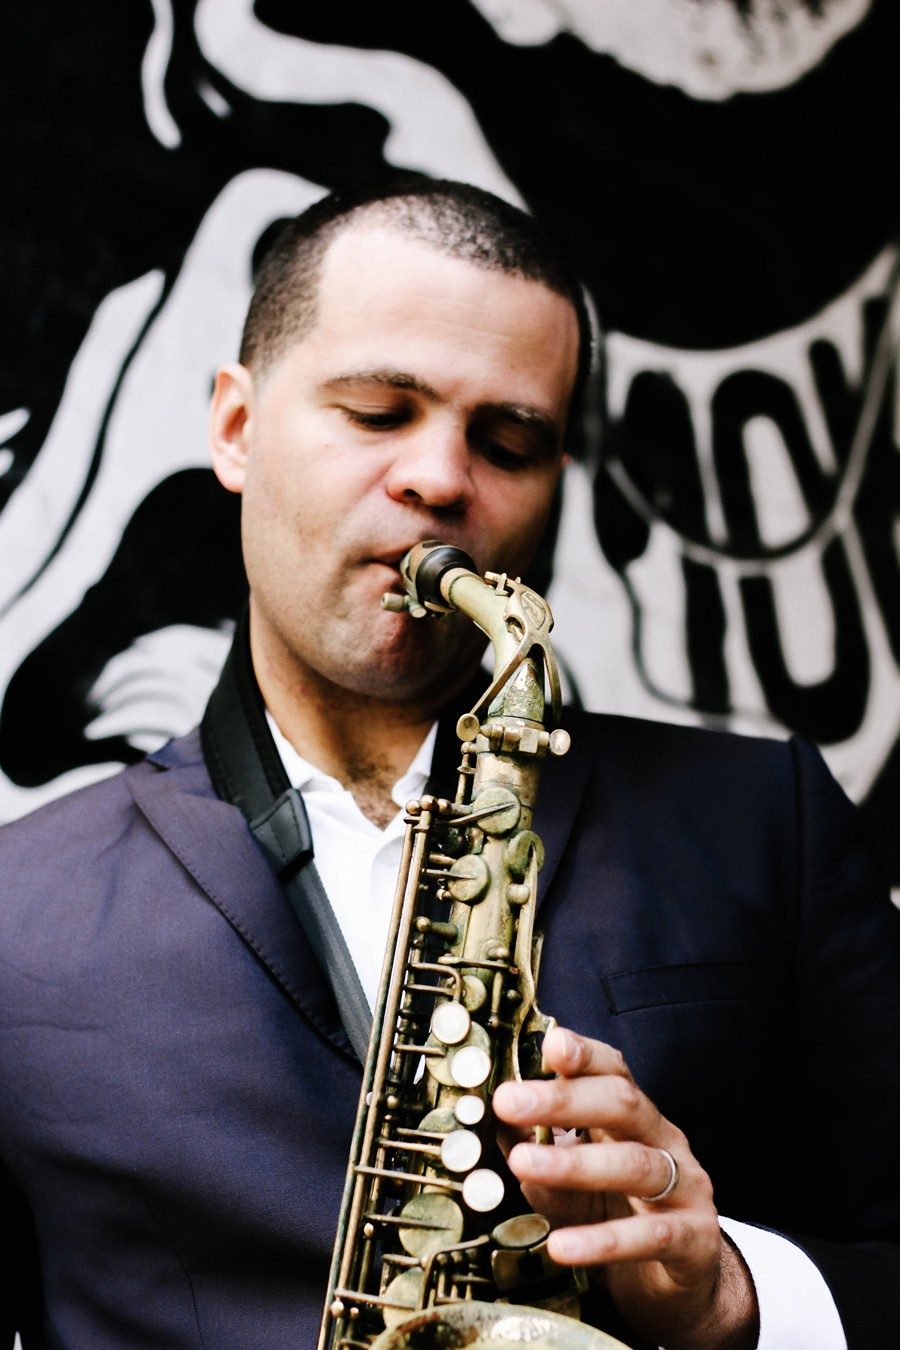 Since returning to Chicago in November, Ward has founded a new quintet, which plays every Tuesday in June at the Whistler. - ZAKKIYYAH NAJEEBAH